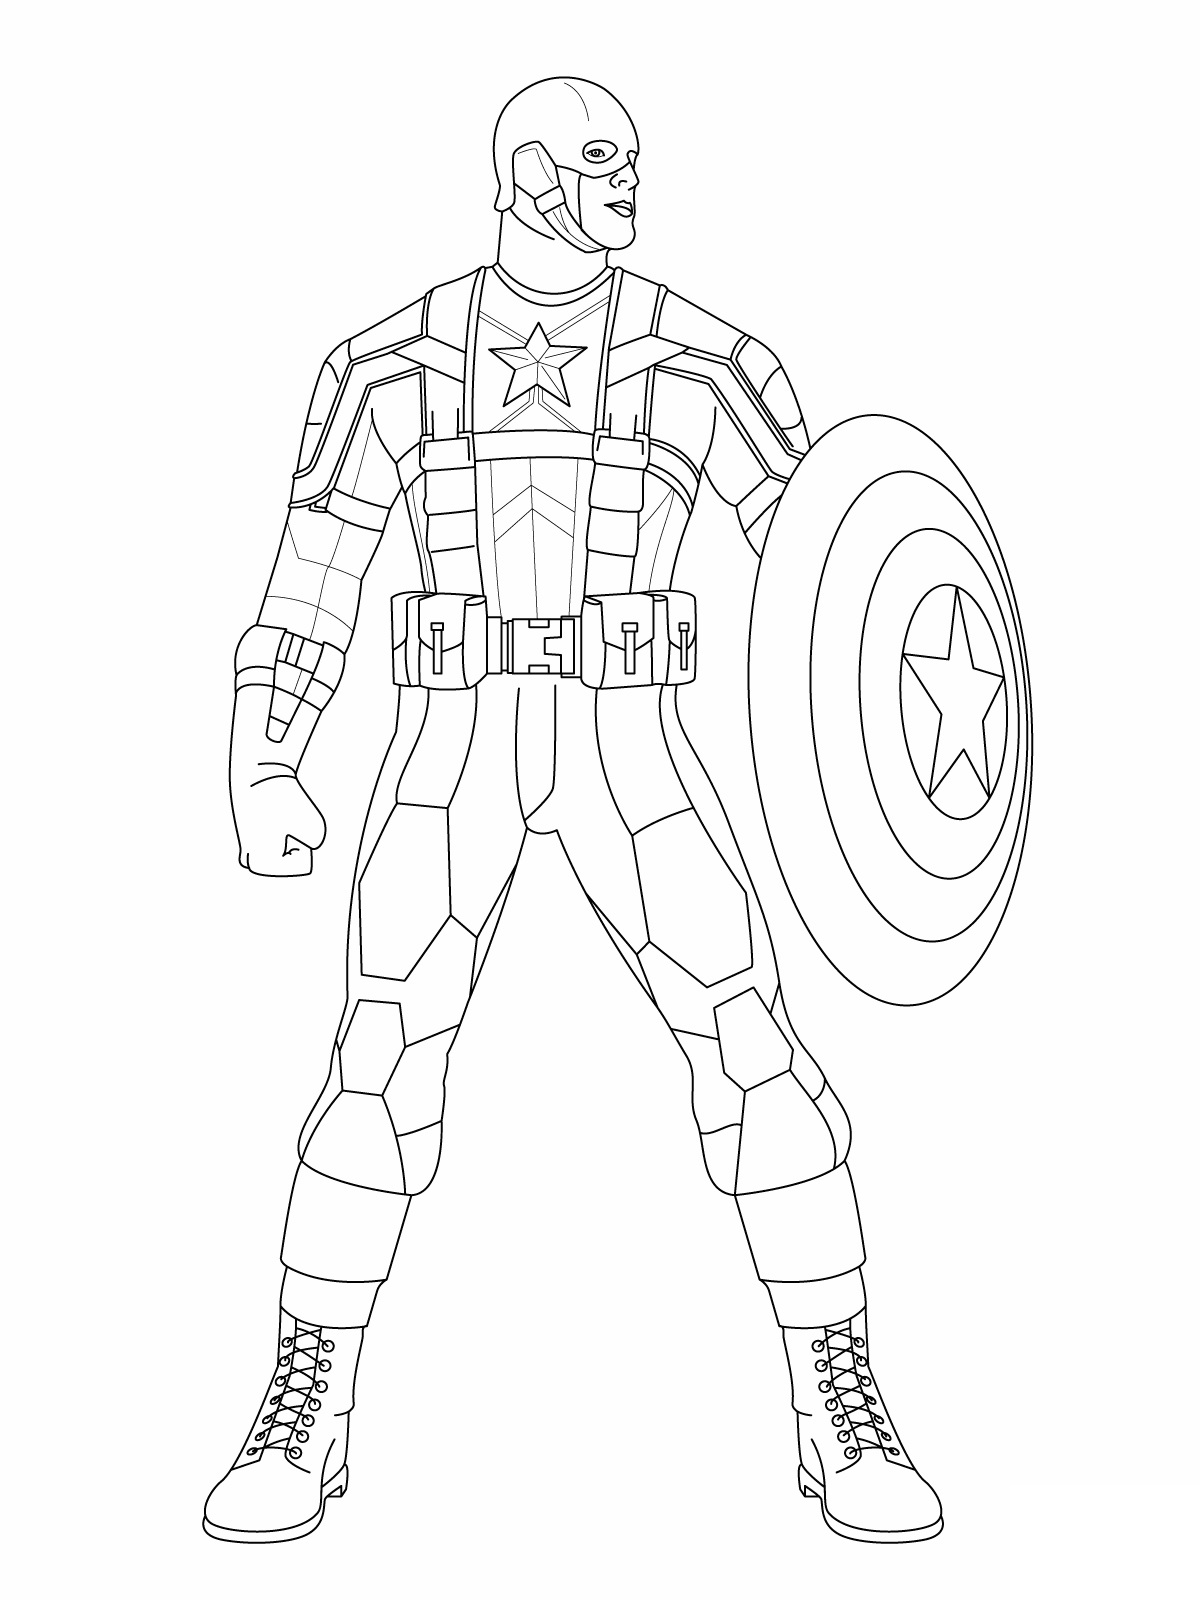 captain-america coloring page,printable,coloring pages